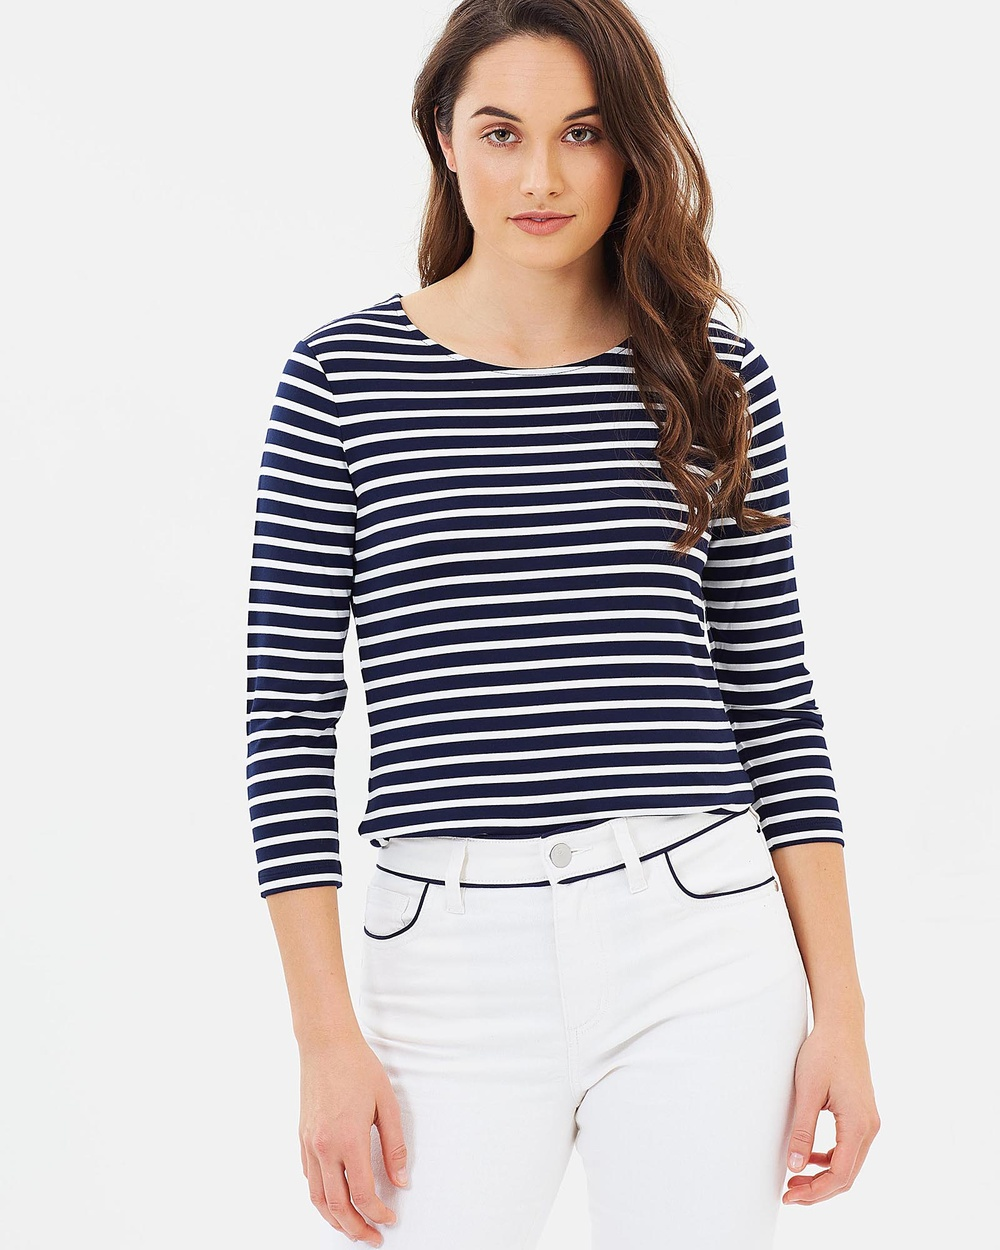 Sportscraft Stripe Magic Tee Tops blue Stripe Magic Tee